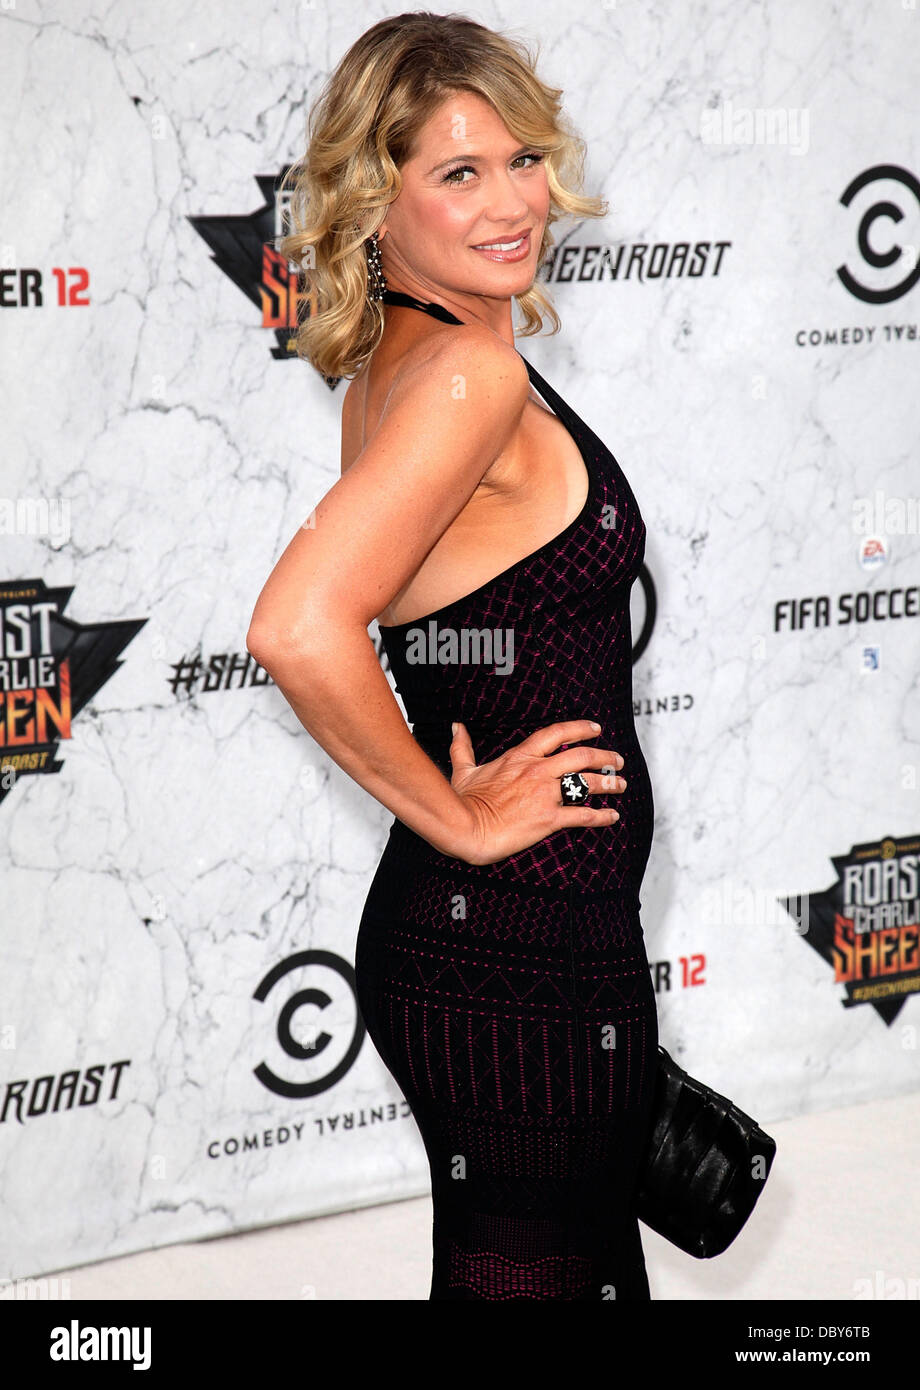 Kristy Swanson Comedy Central Roast Of Charlie Sheen - Arrivals held at Sony Studios Los Angeles, California - 10.09.11 - Stock Image